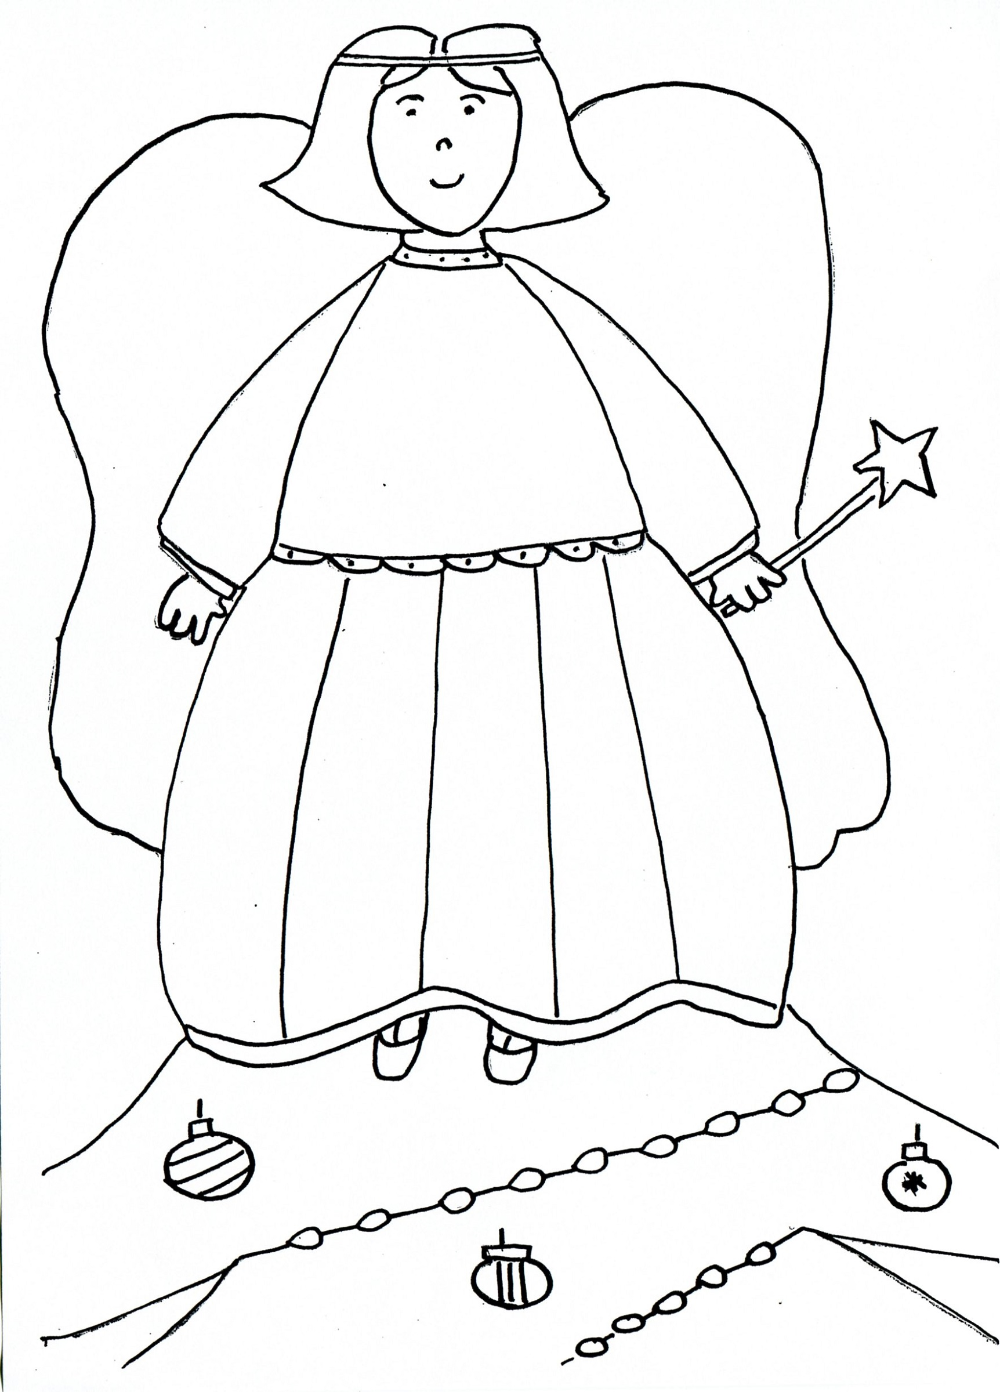 Kids Drawing Templates And Coloring Drawing For Kids Xmas Drawing Drawing Templates